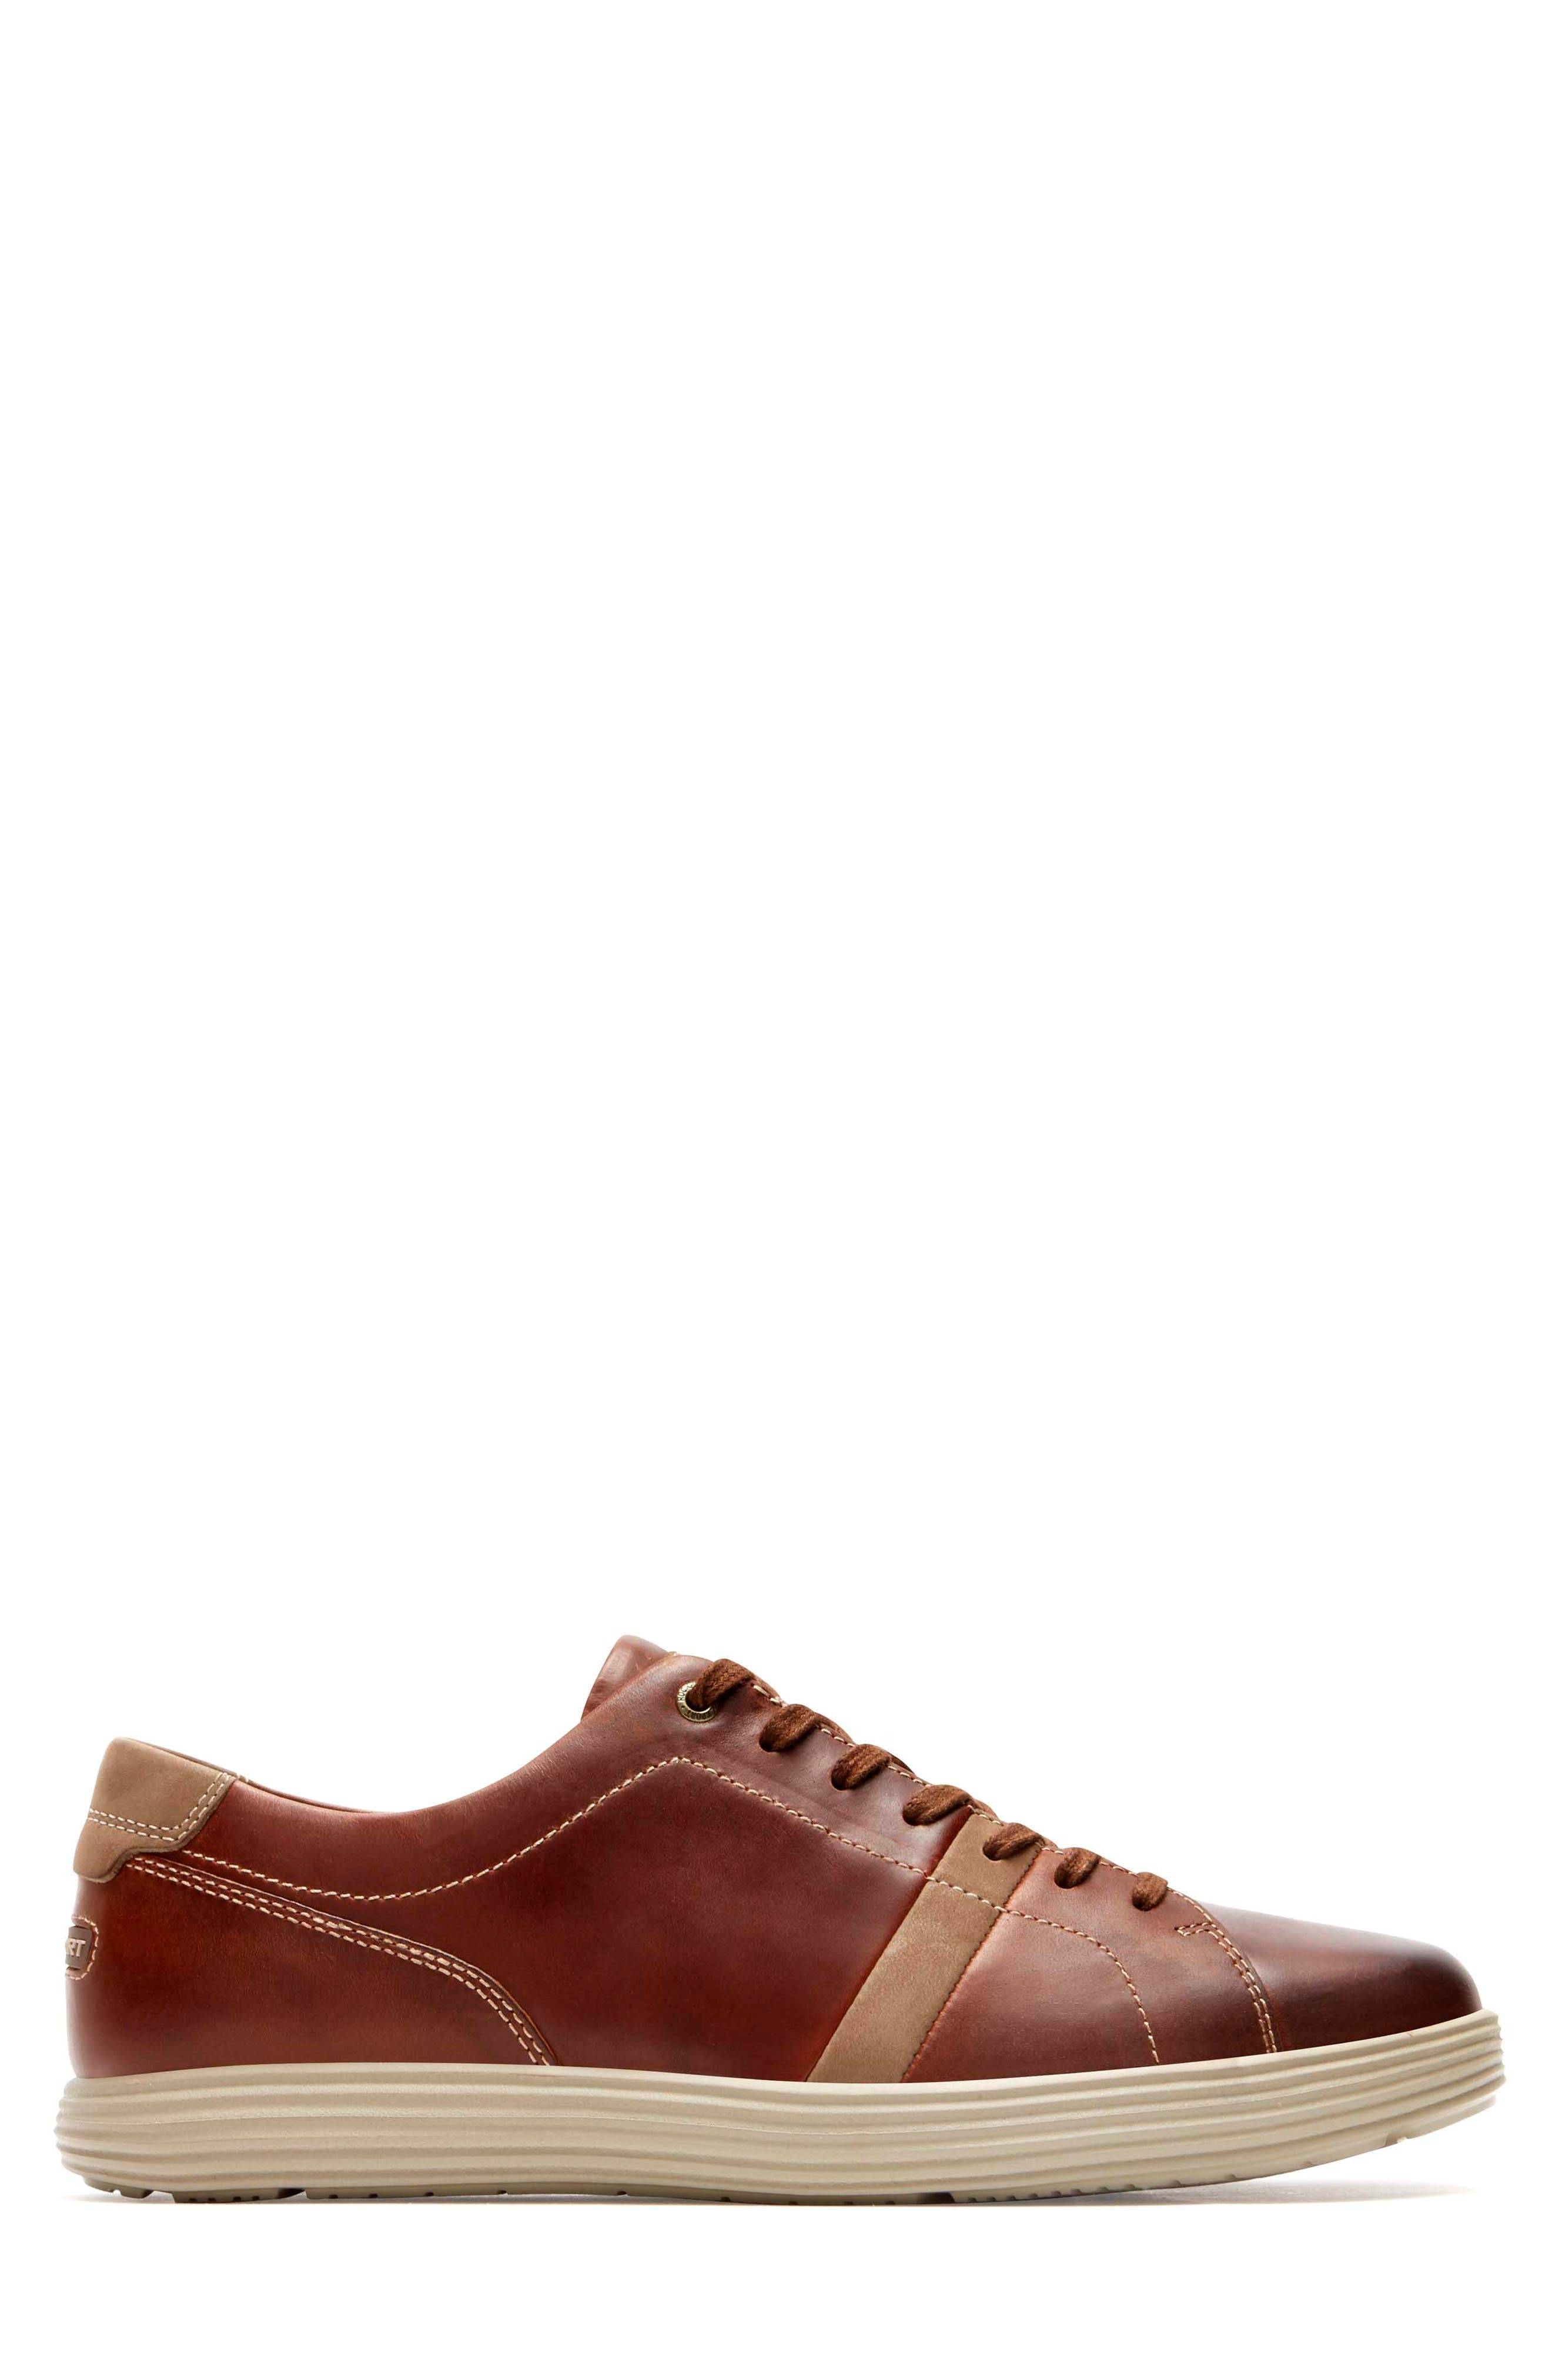 Thurston Sneaker,                             Alternate thumbnail 17, color,